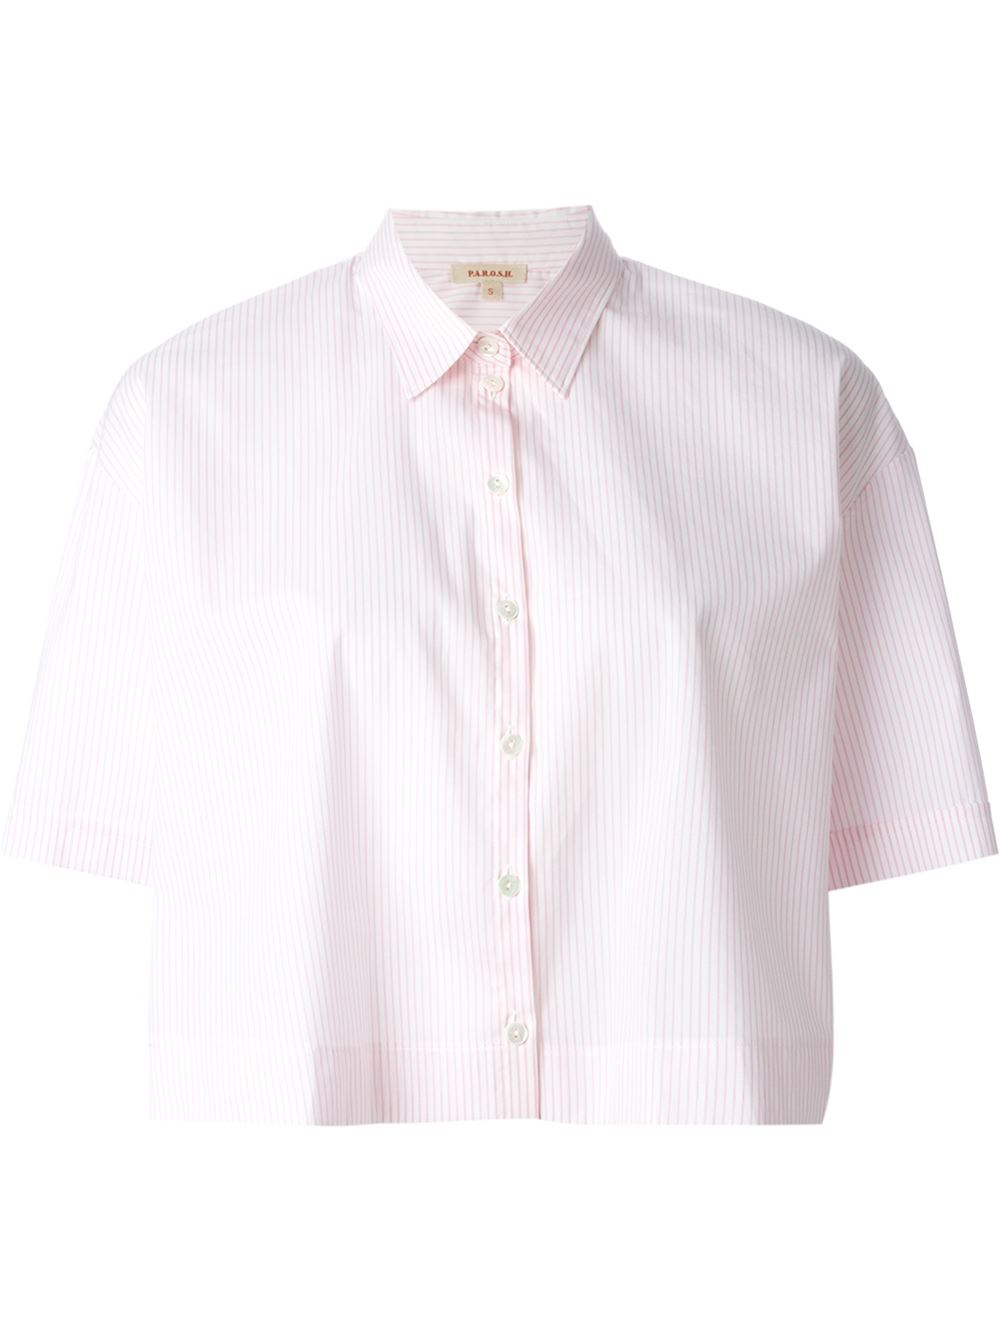 P a r o s h cropped striped shirt in pink pink purple for Pink white striped shirt